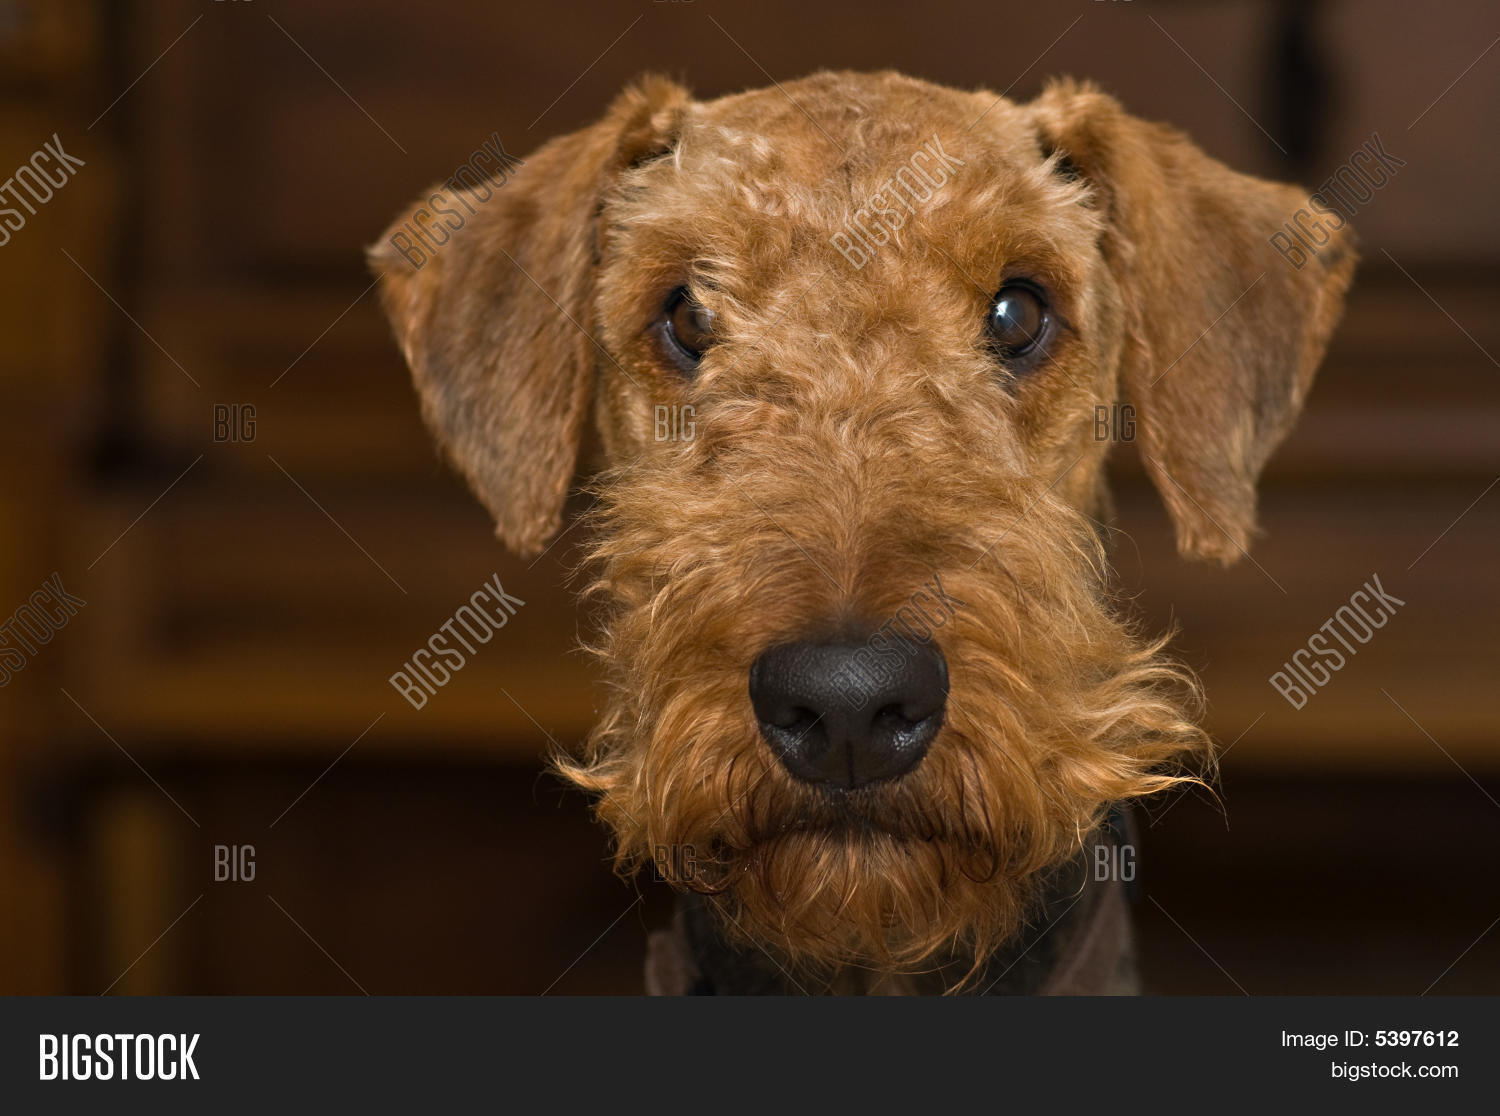 airedale,animal,beard,bearded,breed,brown,canine,close,comical,dog,emotion,expression,face,fluffy,funny,furry,head,indoors,innocence,innocent,interior,looking,mug,muzzle,nose,pedigree,pet,pose,posed,purebred,red,scruffy,shot,silly,snout,terrier,wispy